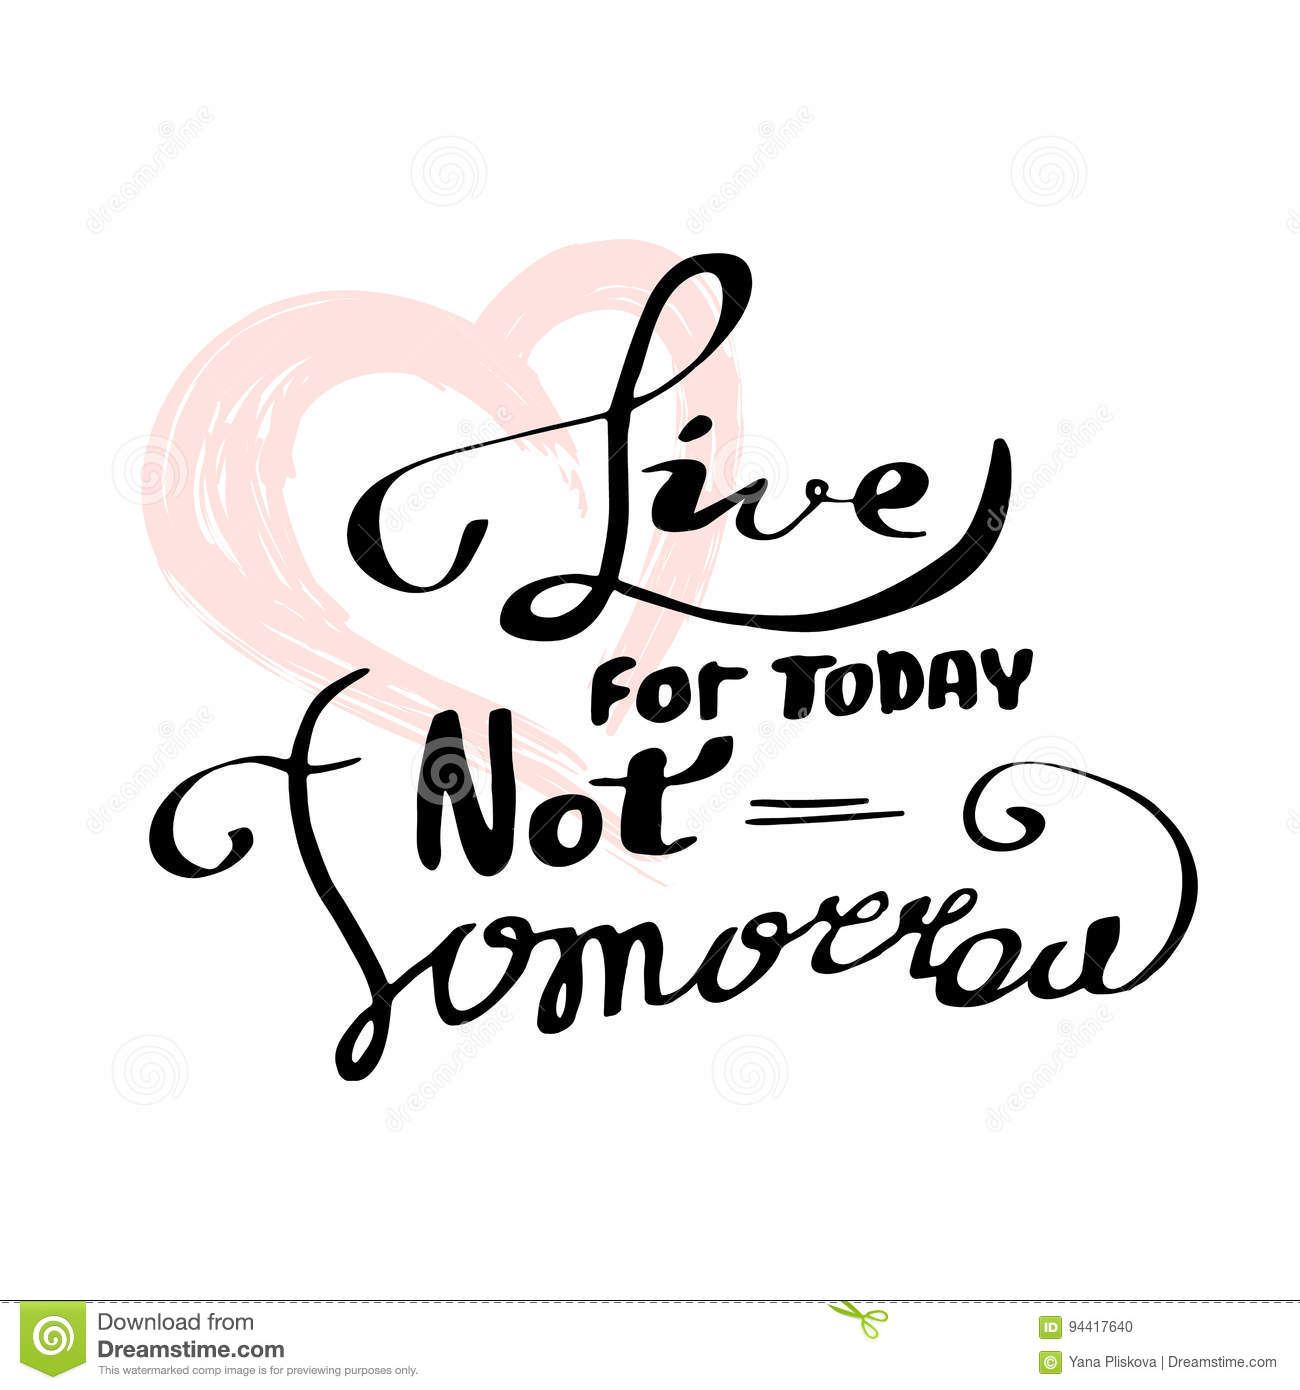 Live For Today Quotes Lettering Modern Calligraphylive For Today Not Tomorrow Stock